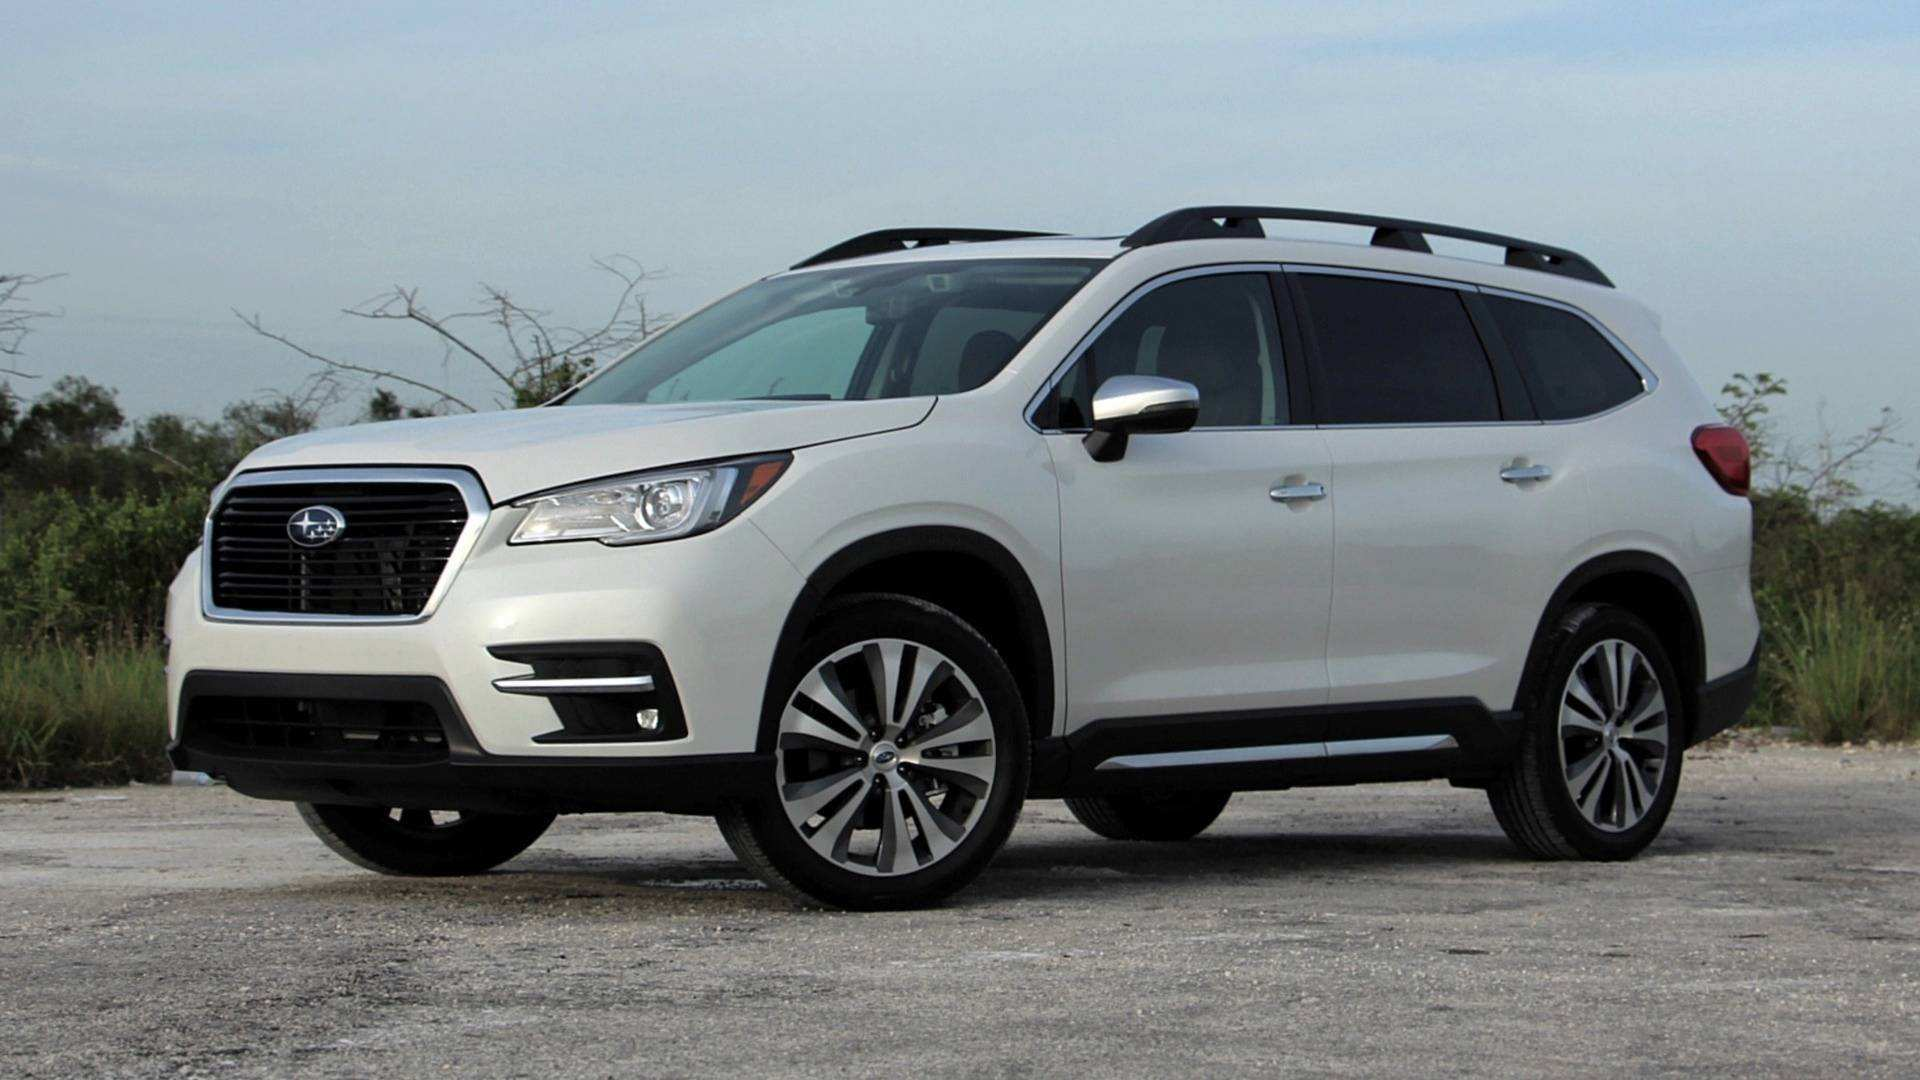 77 Best Review 2019 Subaru Ascent Mpg Redesign by 2019 Subaru Ascent Mpg